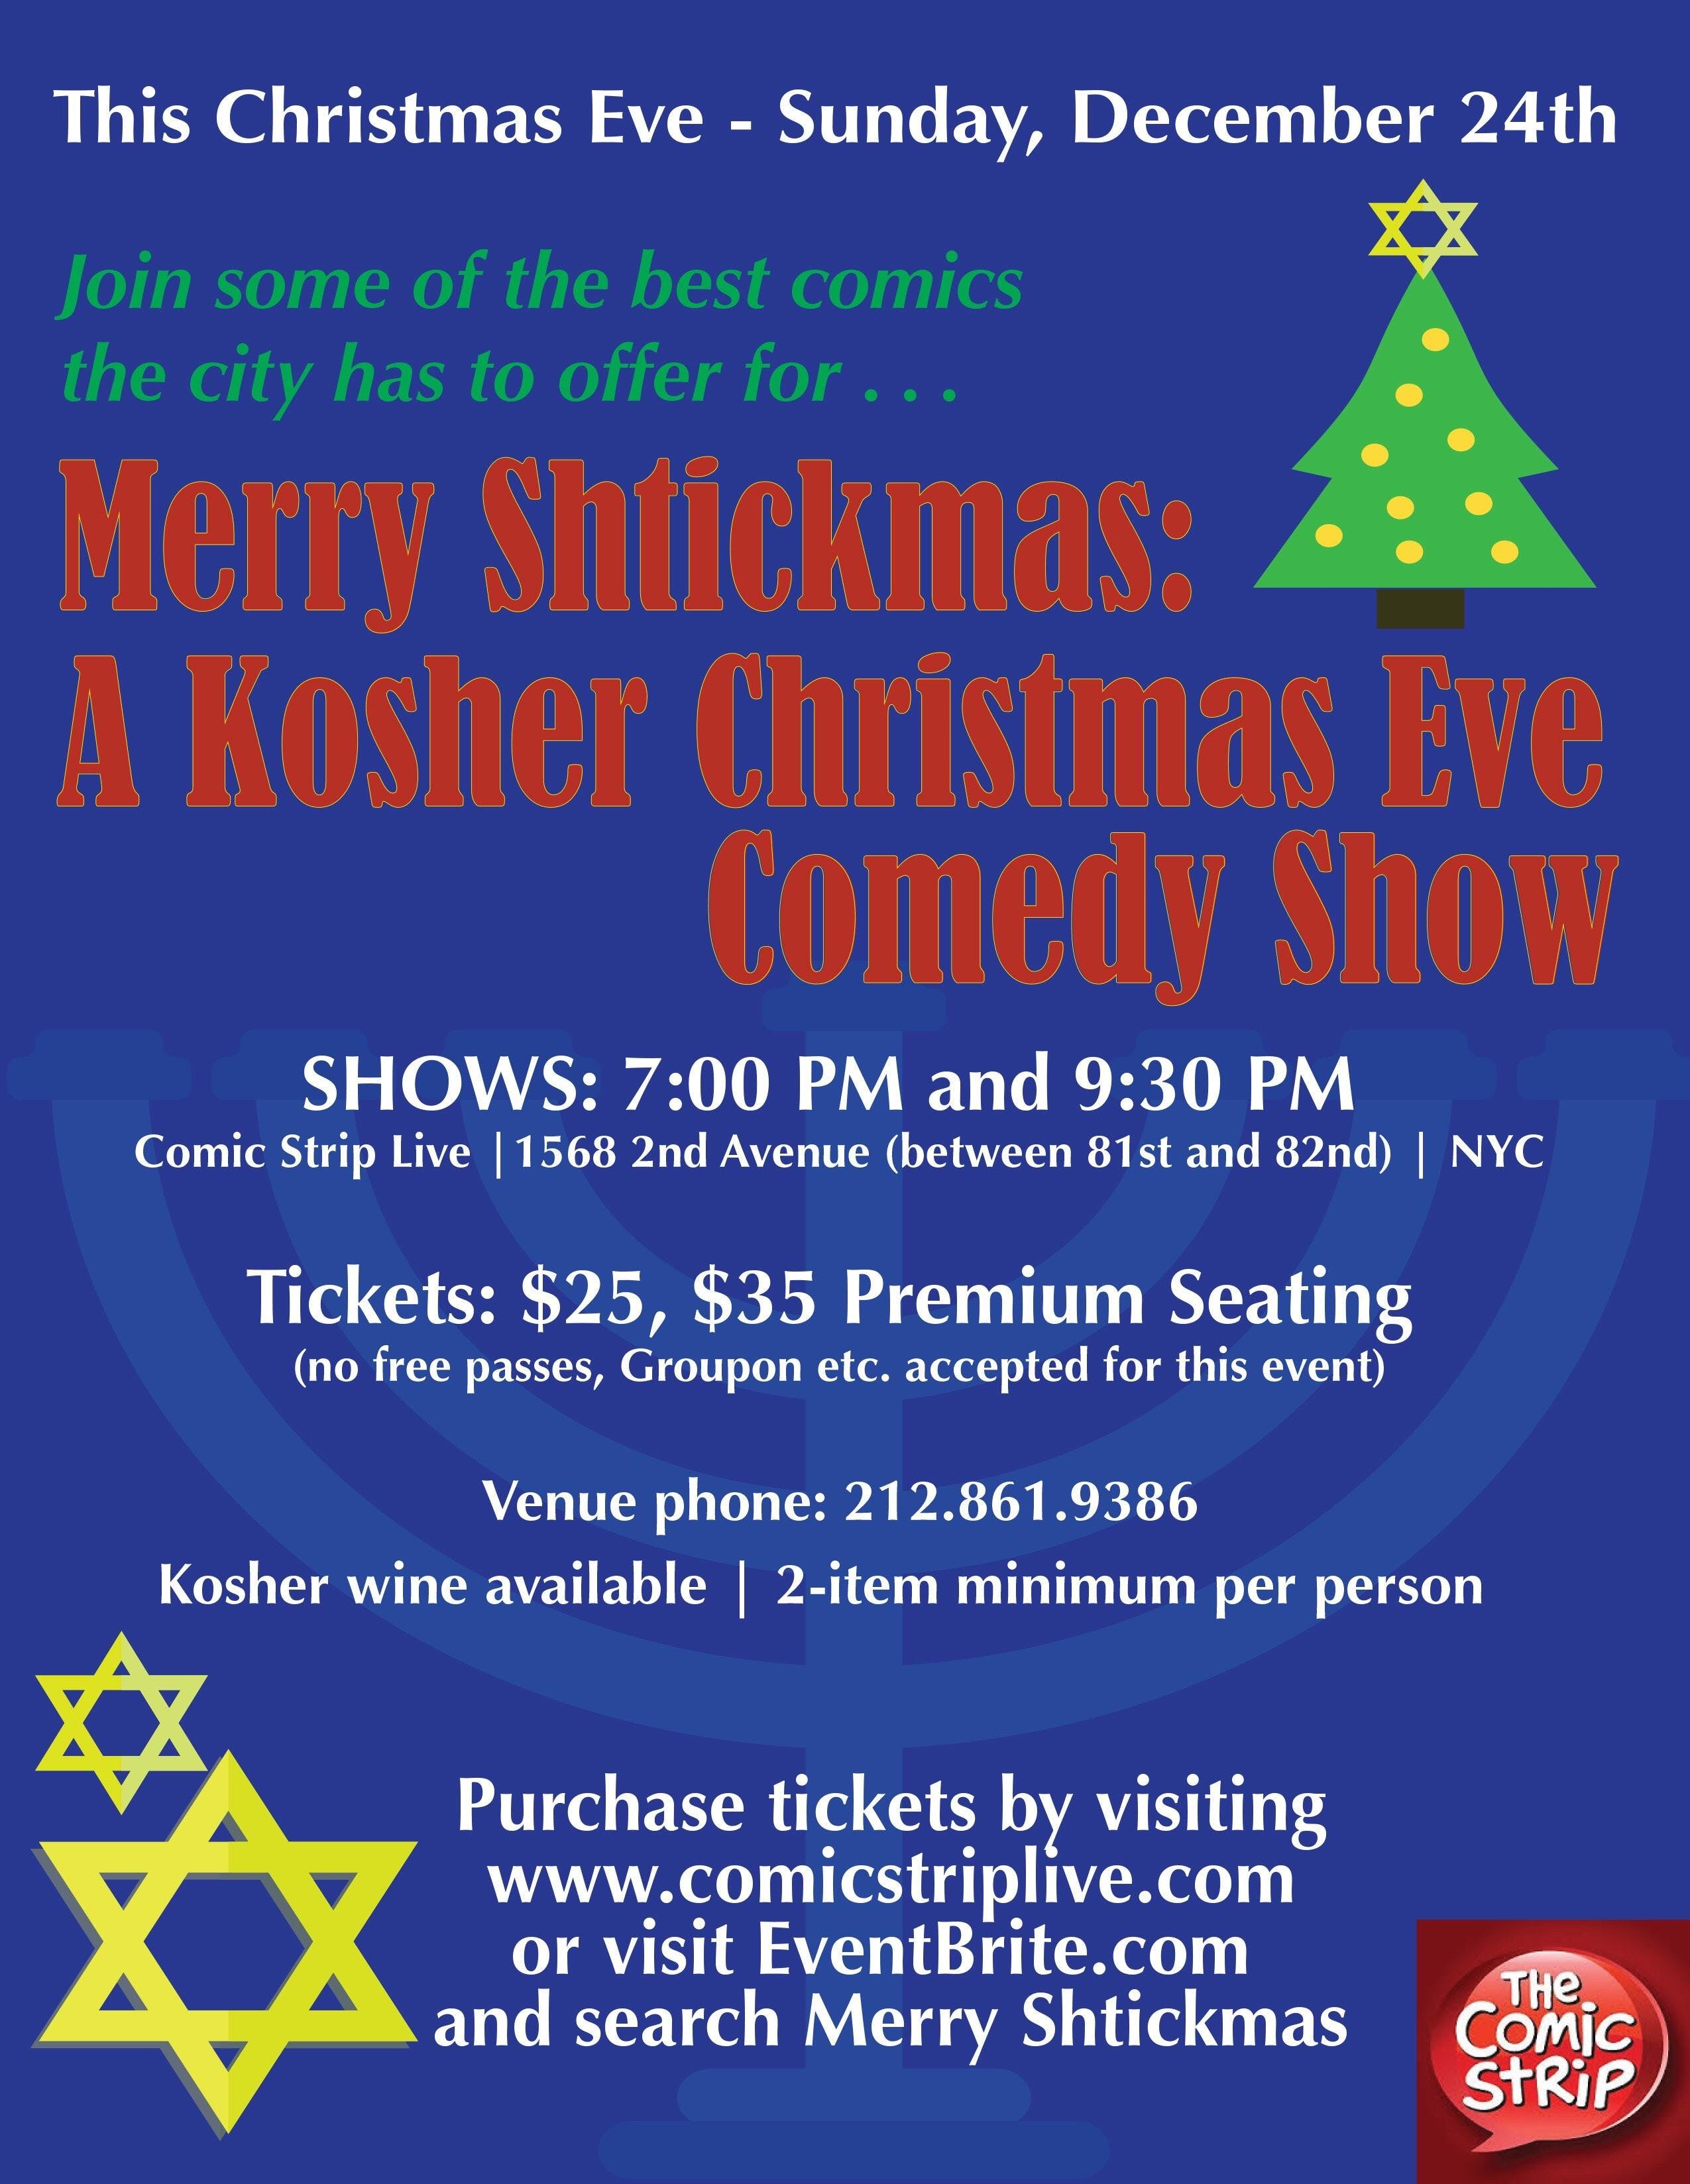 Merry Shtickmas: A Jewish Christmas Eve Comedy Show - 24 DEC 2018